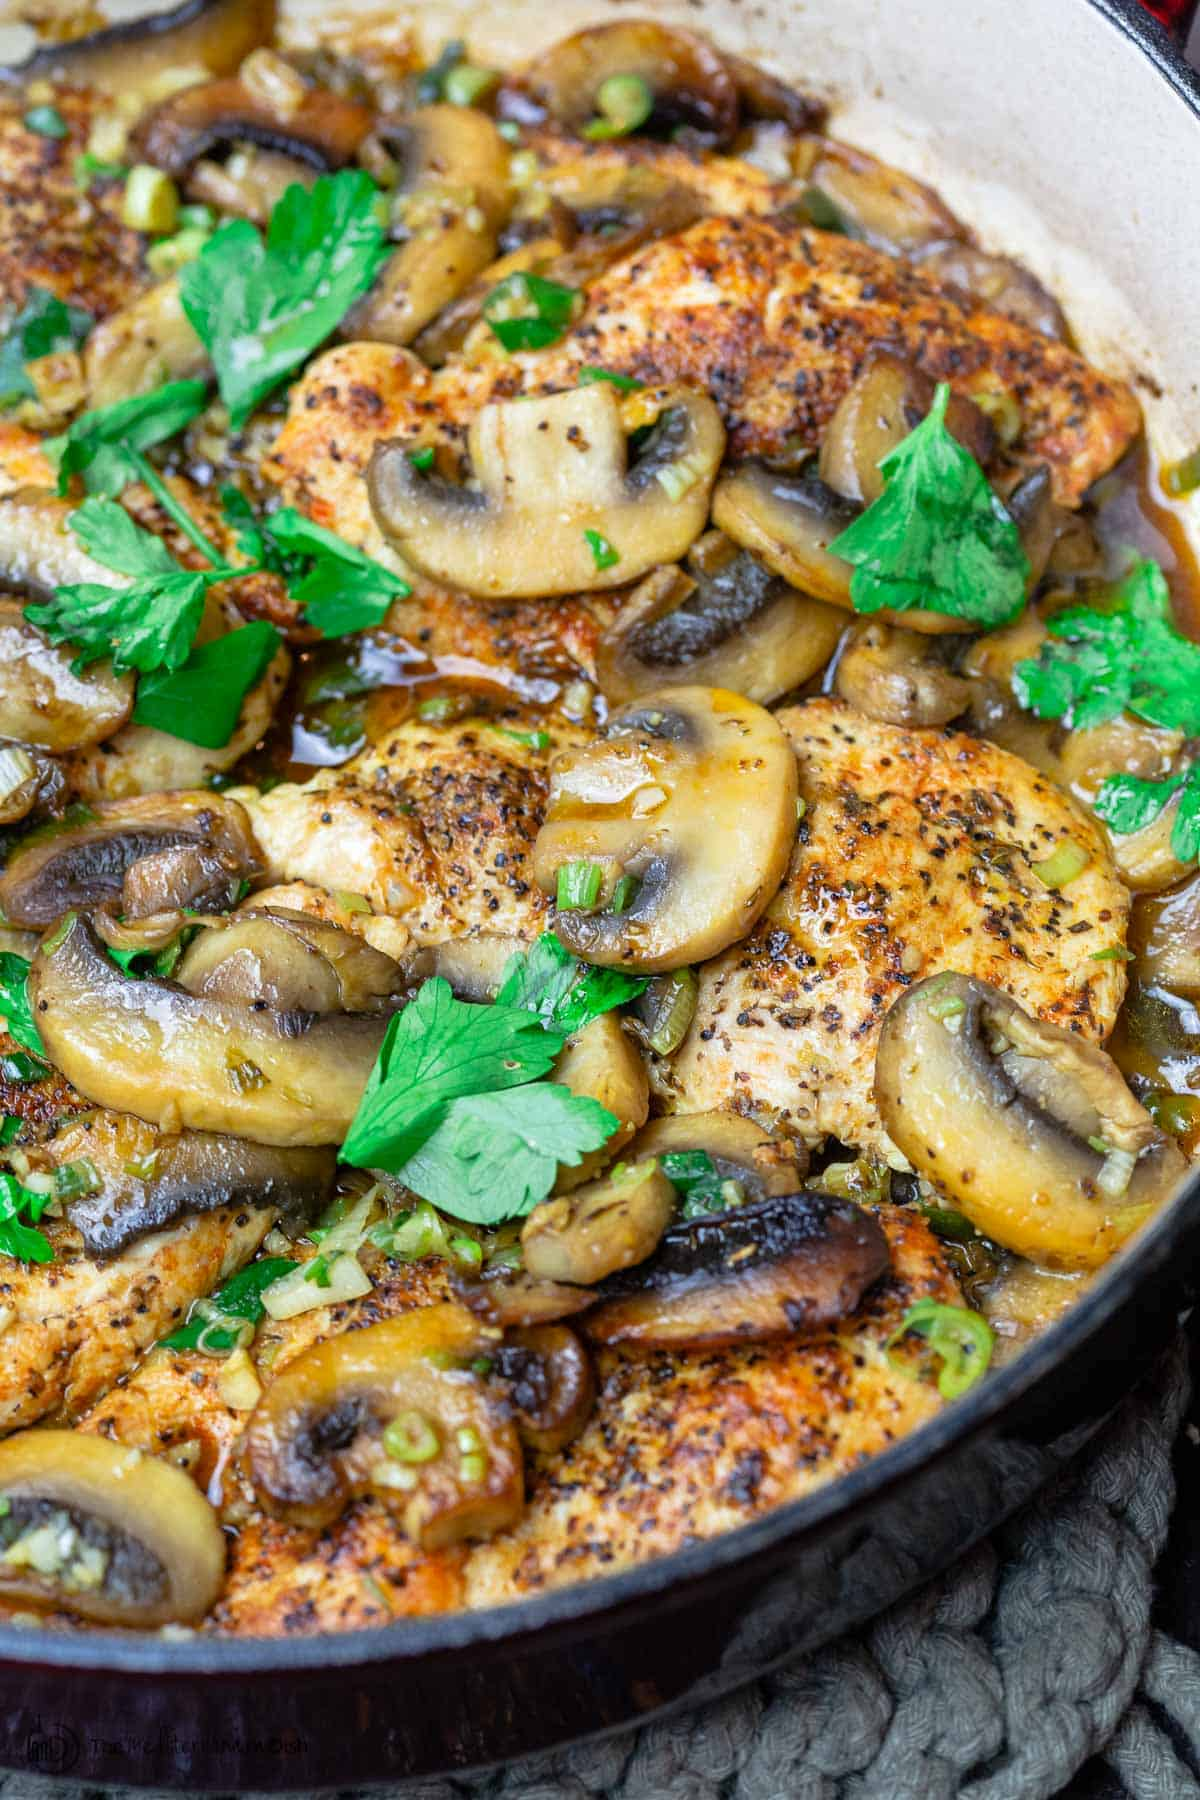 Chicken and mushrooms garnished with parsley